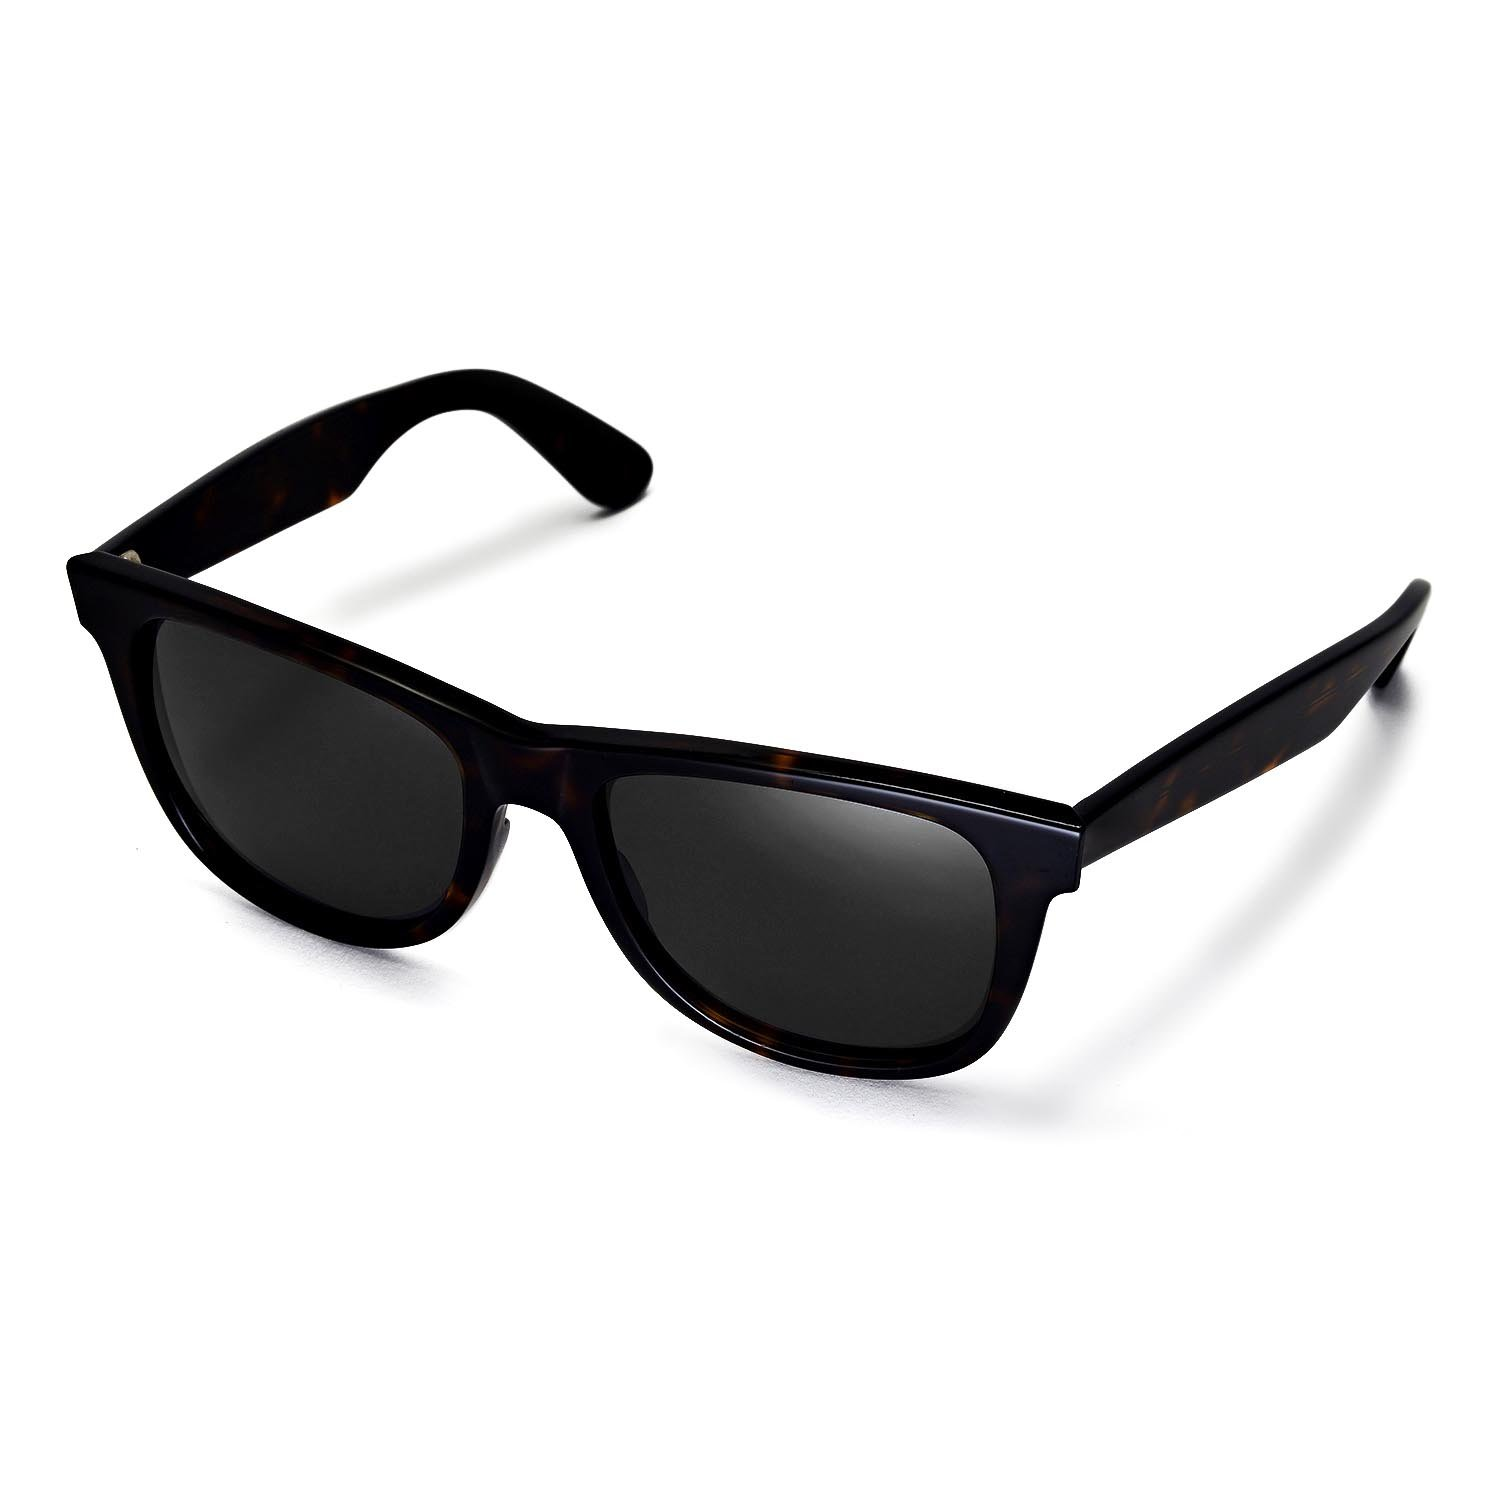 71062e23c Amazon.com: Walleva Replacement Lenses for Ray-Ban Wayfarer RB2140 54mm  Sunglasses - Multiple Options Available(Black - Polirazed): Clothing